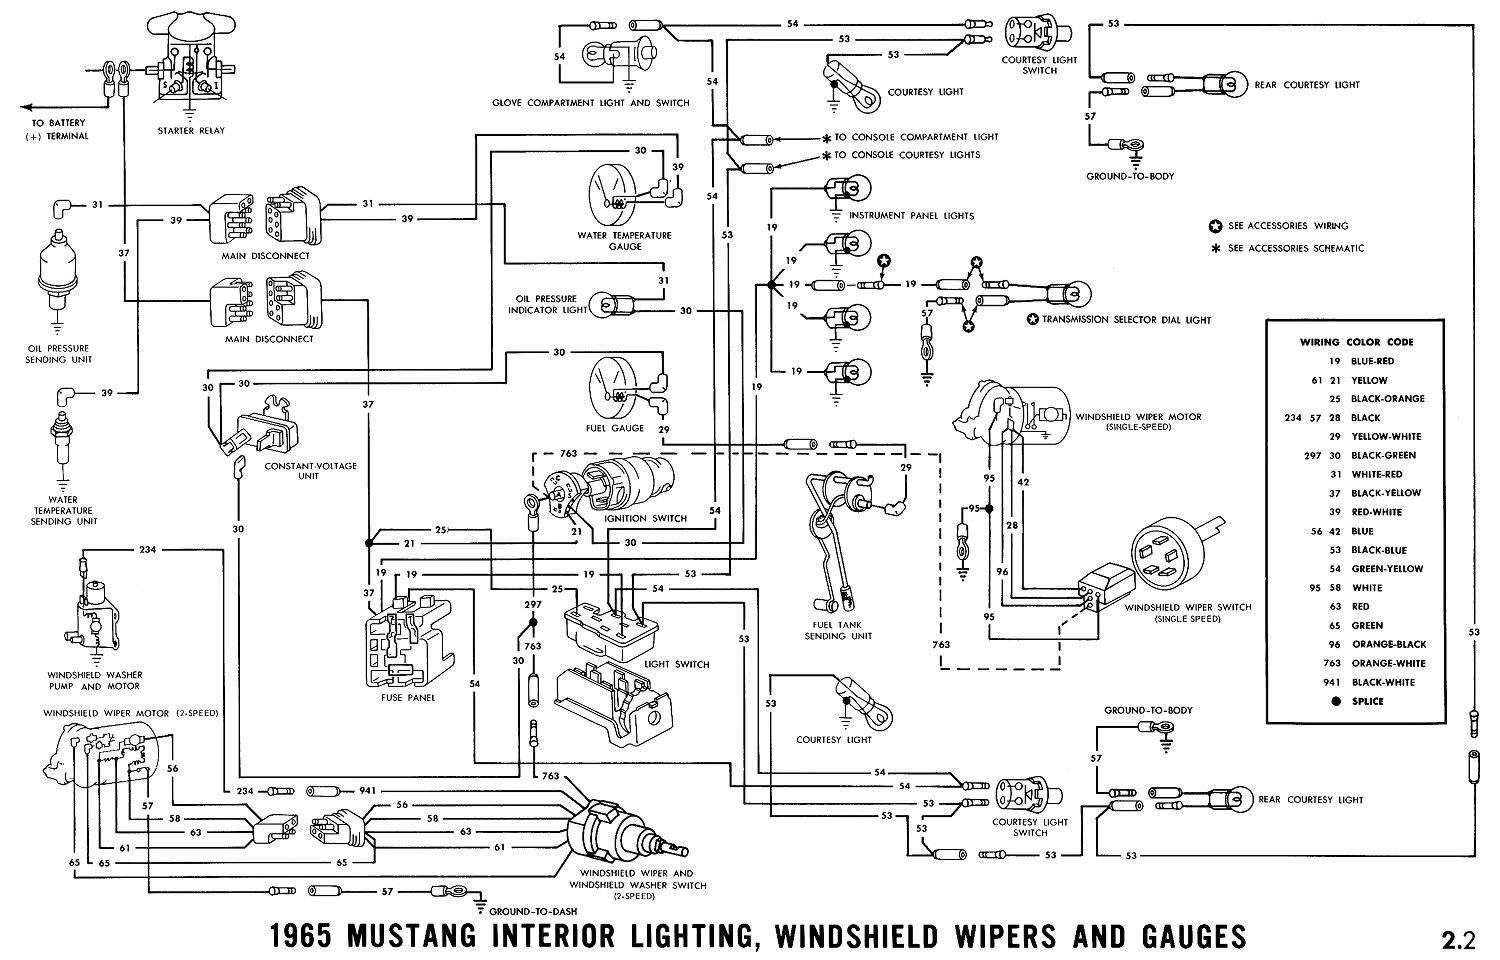 1968 mustang dash wiring diagram wiring diagram rh w3 vom winnenthal de